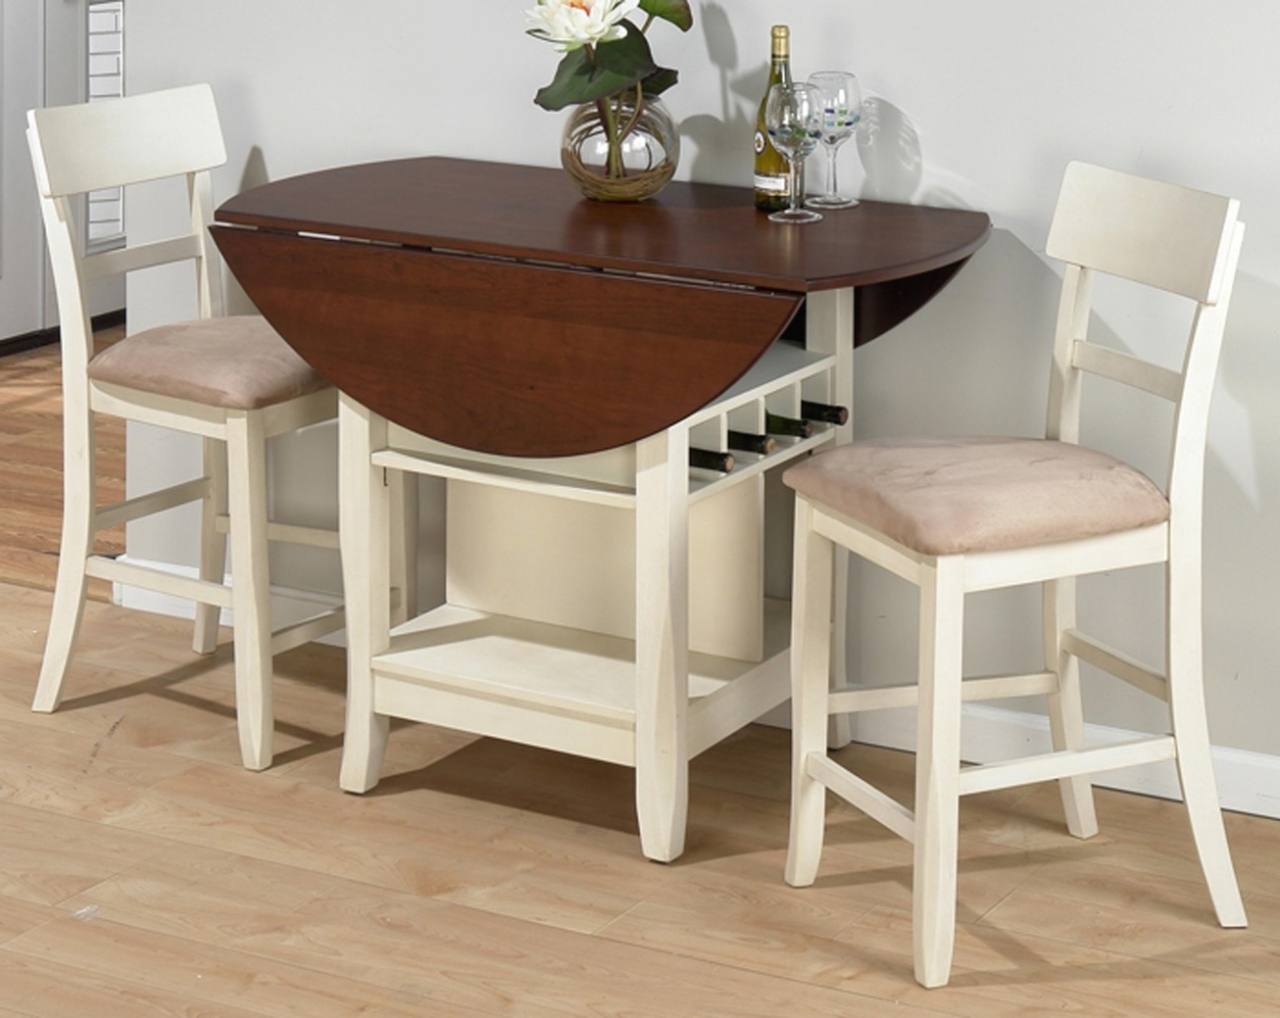 Dining: Fantastic Drop Leaf Dining Table For Small Spaces — Cole Intended For Most Recent Small Two Person Dining Tables (View 2 of 25)